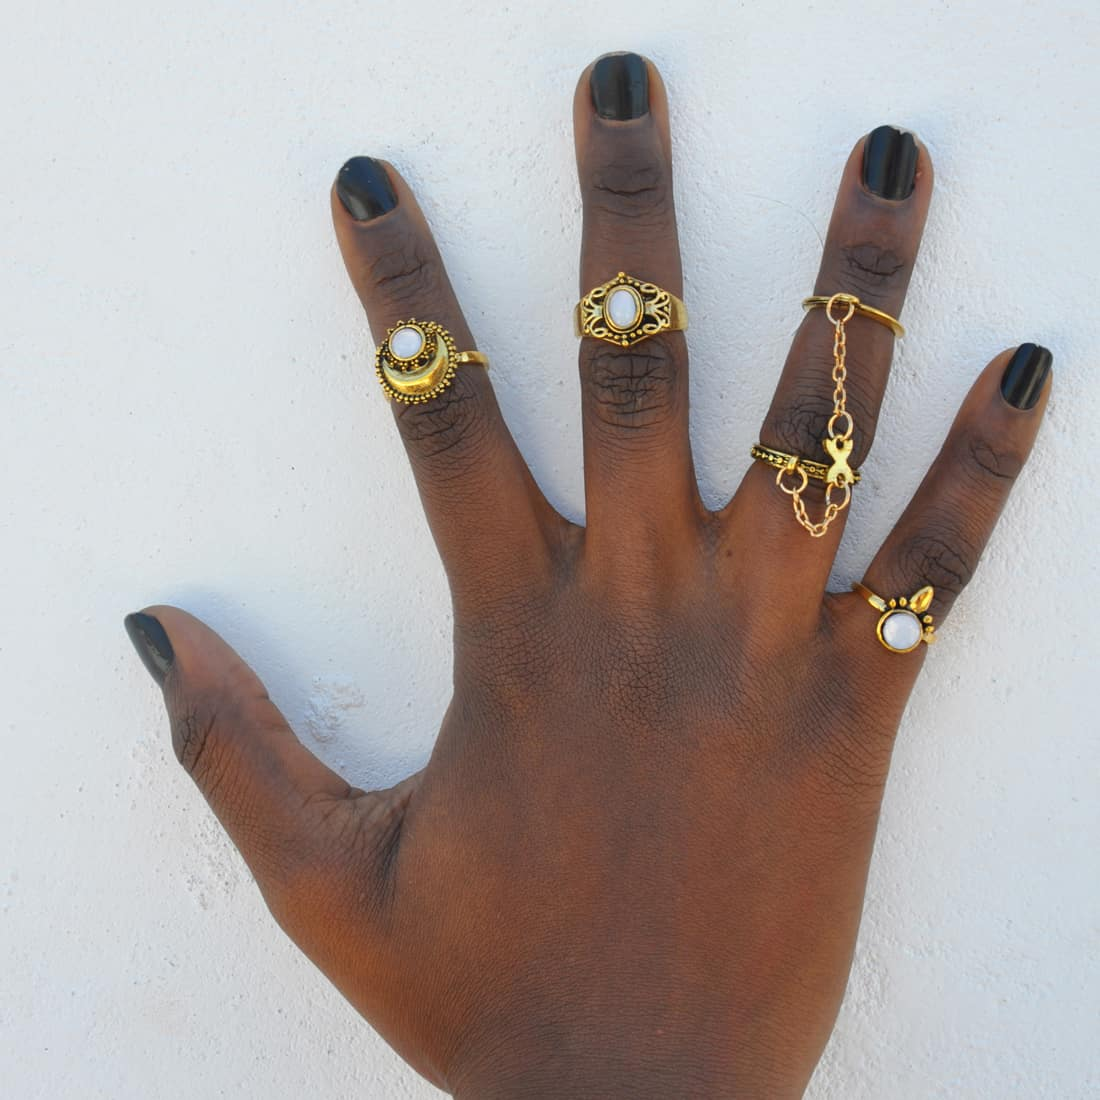 M0345 gold8 Jewelry Sets Rings maureens.com boutique